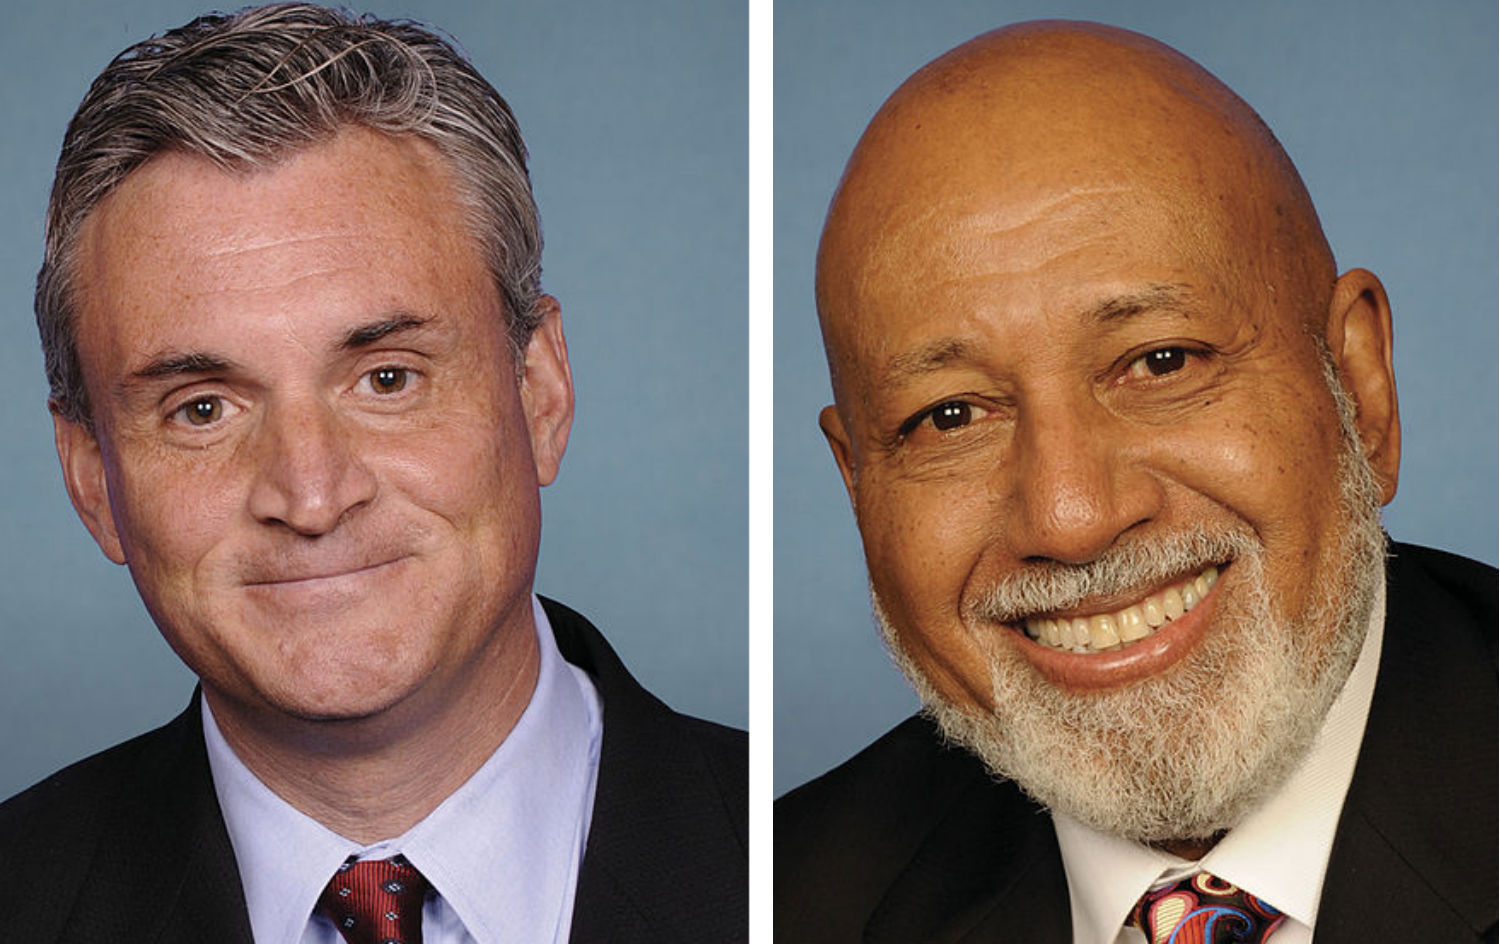 Democratic-Reps.-Rob-Andrews-of-New-Jersey-and-Alcee-Hastings-of-Florida-are-trying-to-protect-the-for-profit-career-college-industry.-Photographs-courtesy-of-the-US-House-of-Representatives